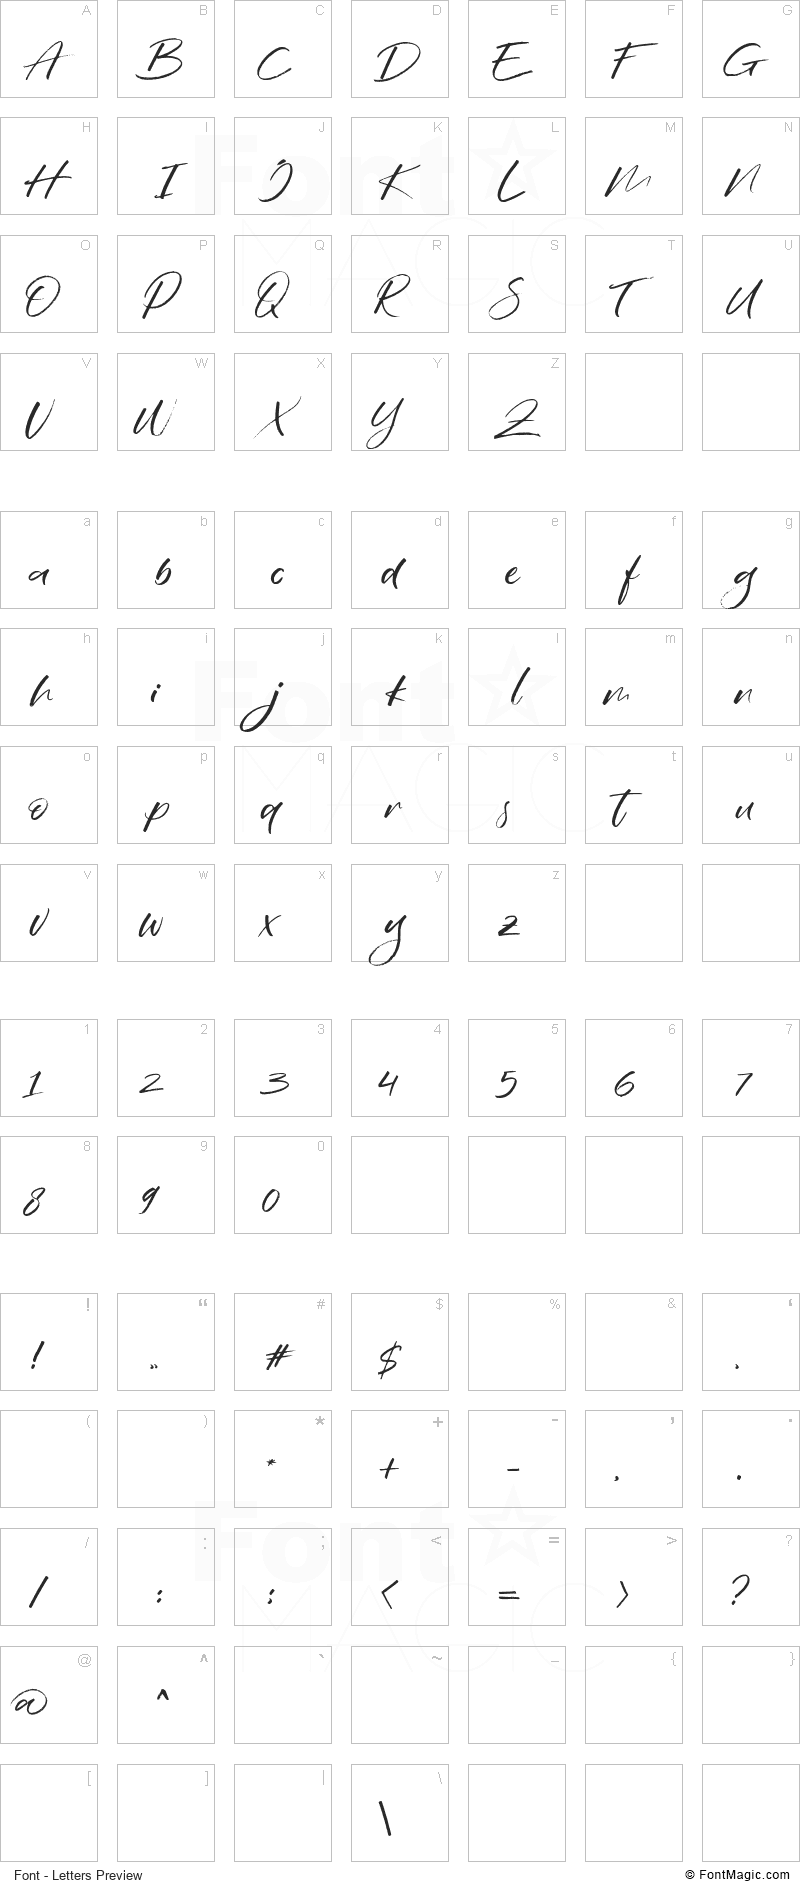 Wildbreak Font - All Latters Preview Chart